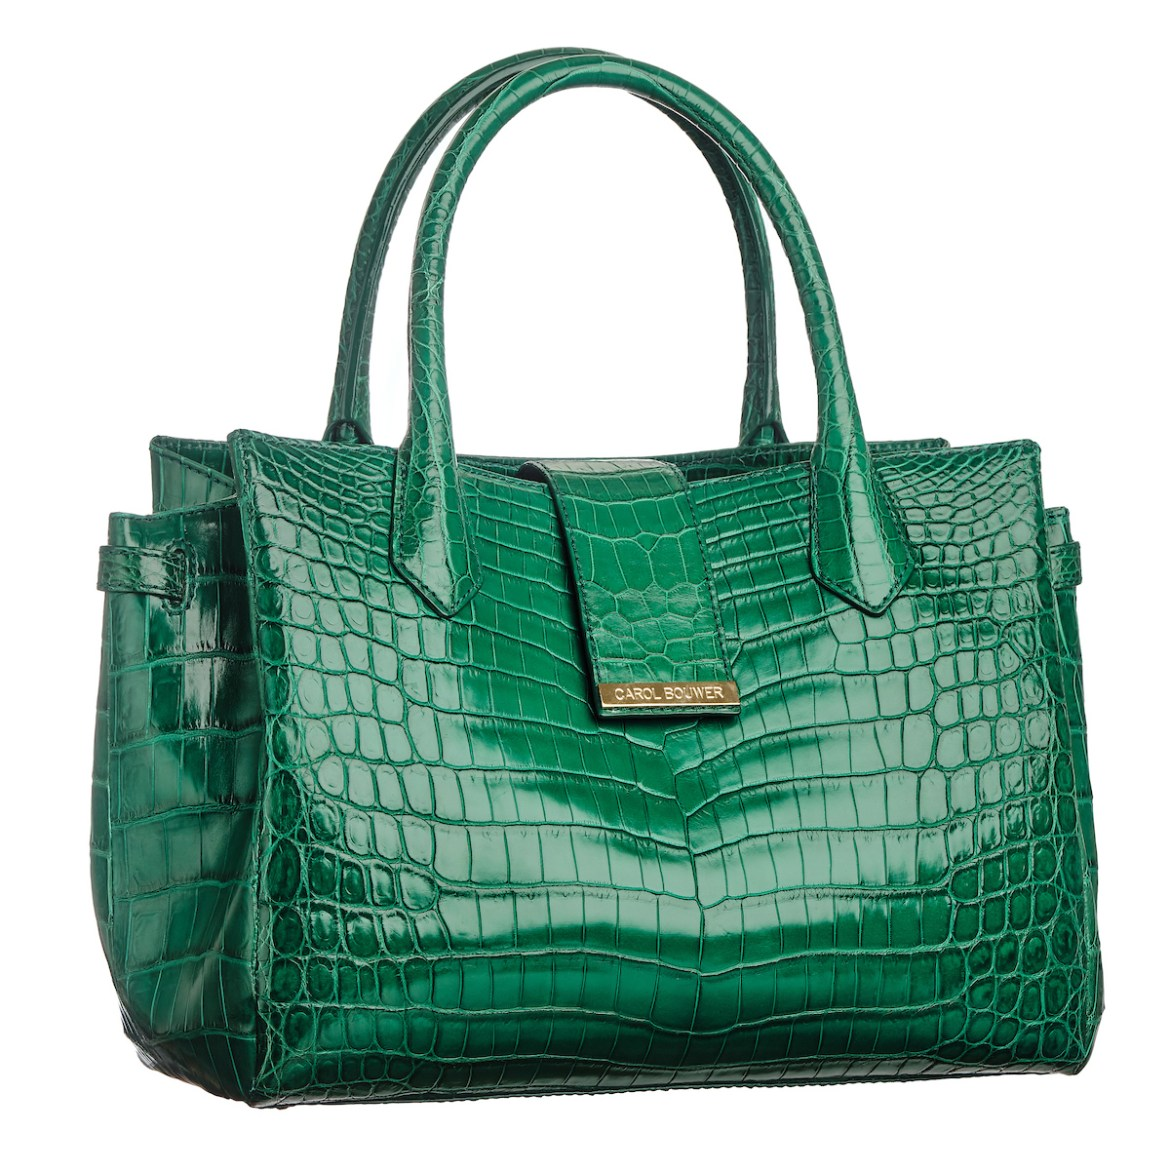 Example of a Carol Bouwer Handbag against white background